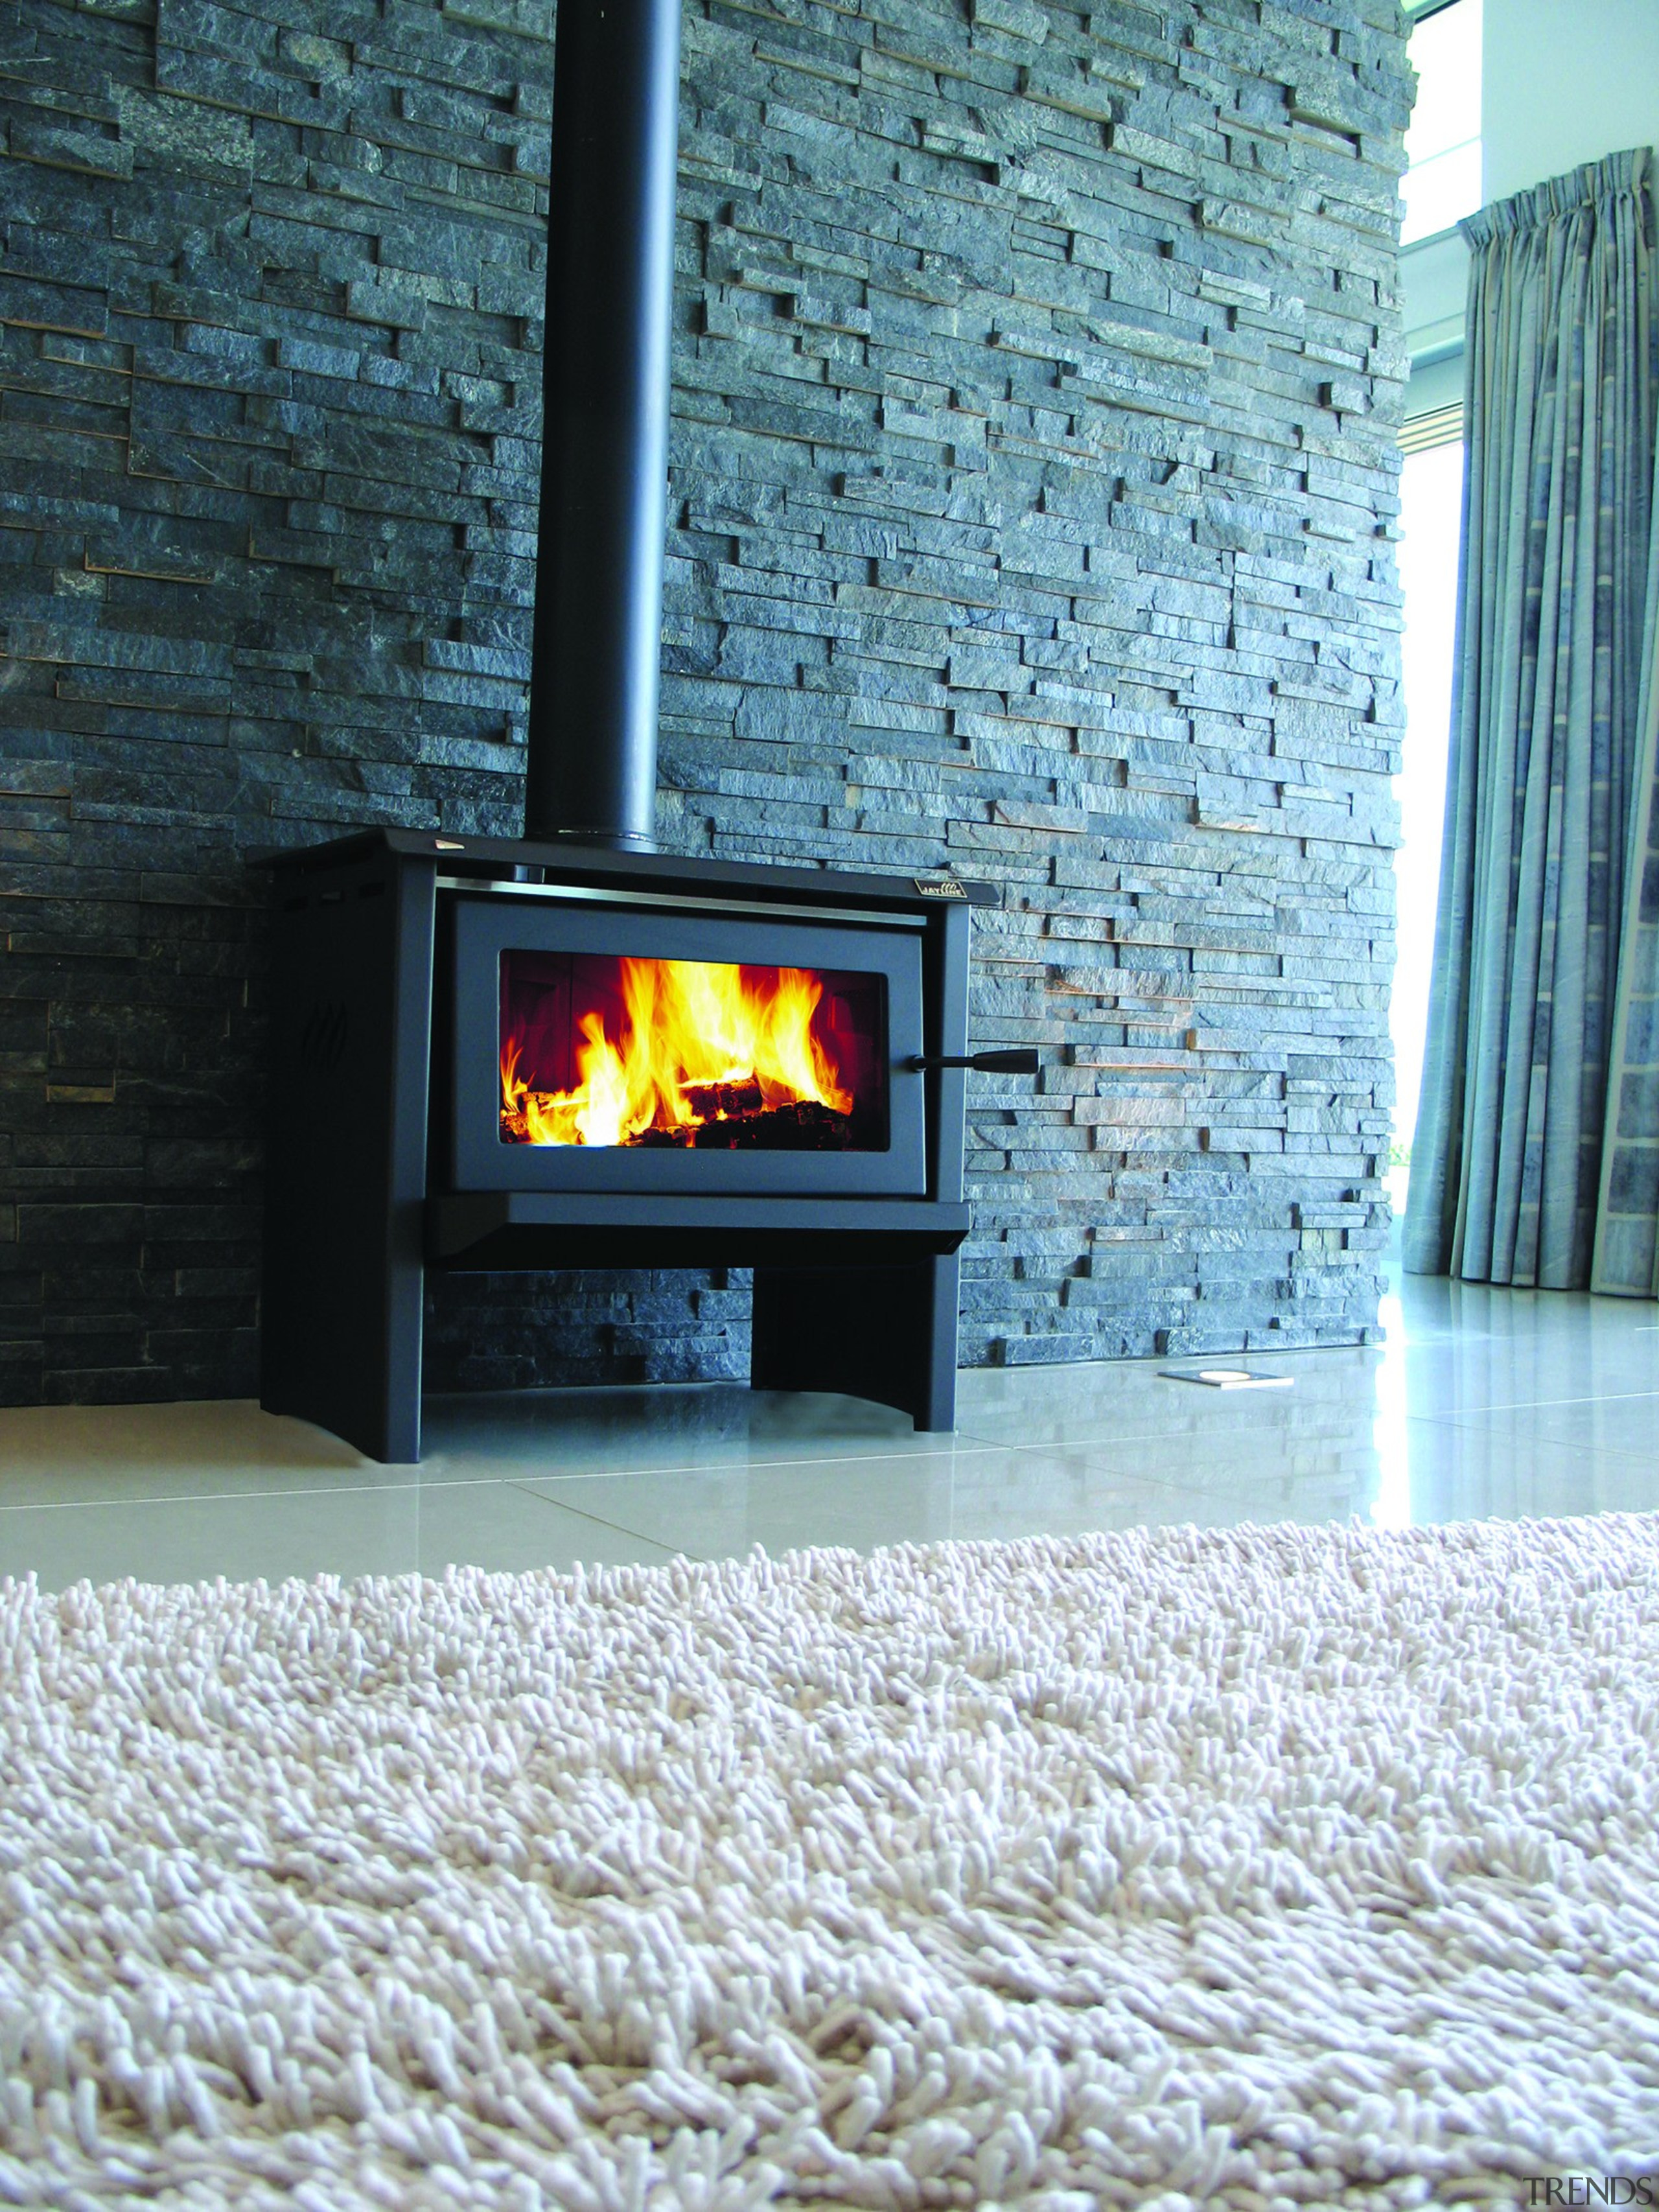 SS200-wall carpet - SS200-wall carpet - fireplace   fireplace, hearth, heat, home appliance, stove, wood burning stove, teal